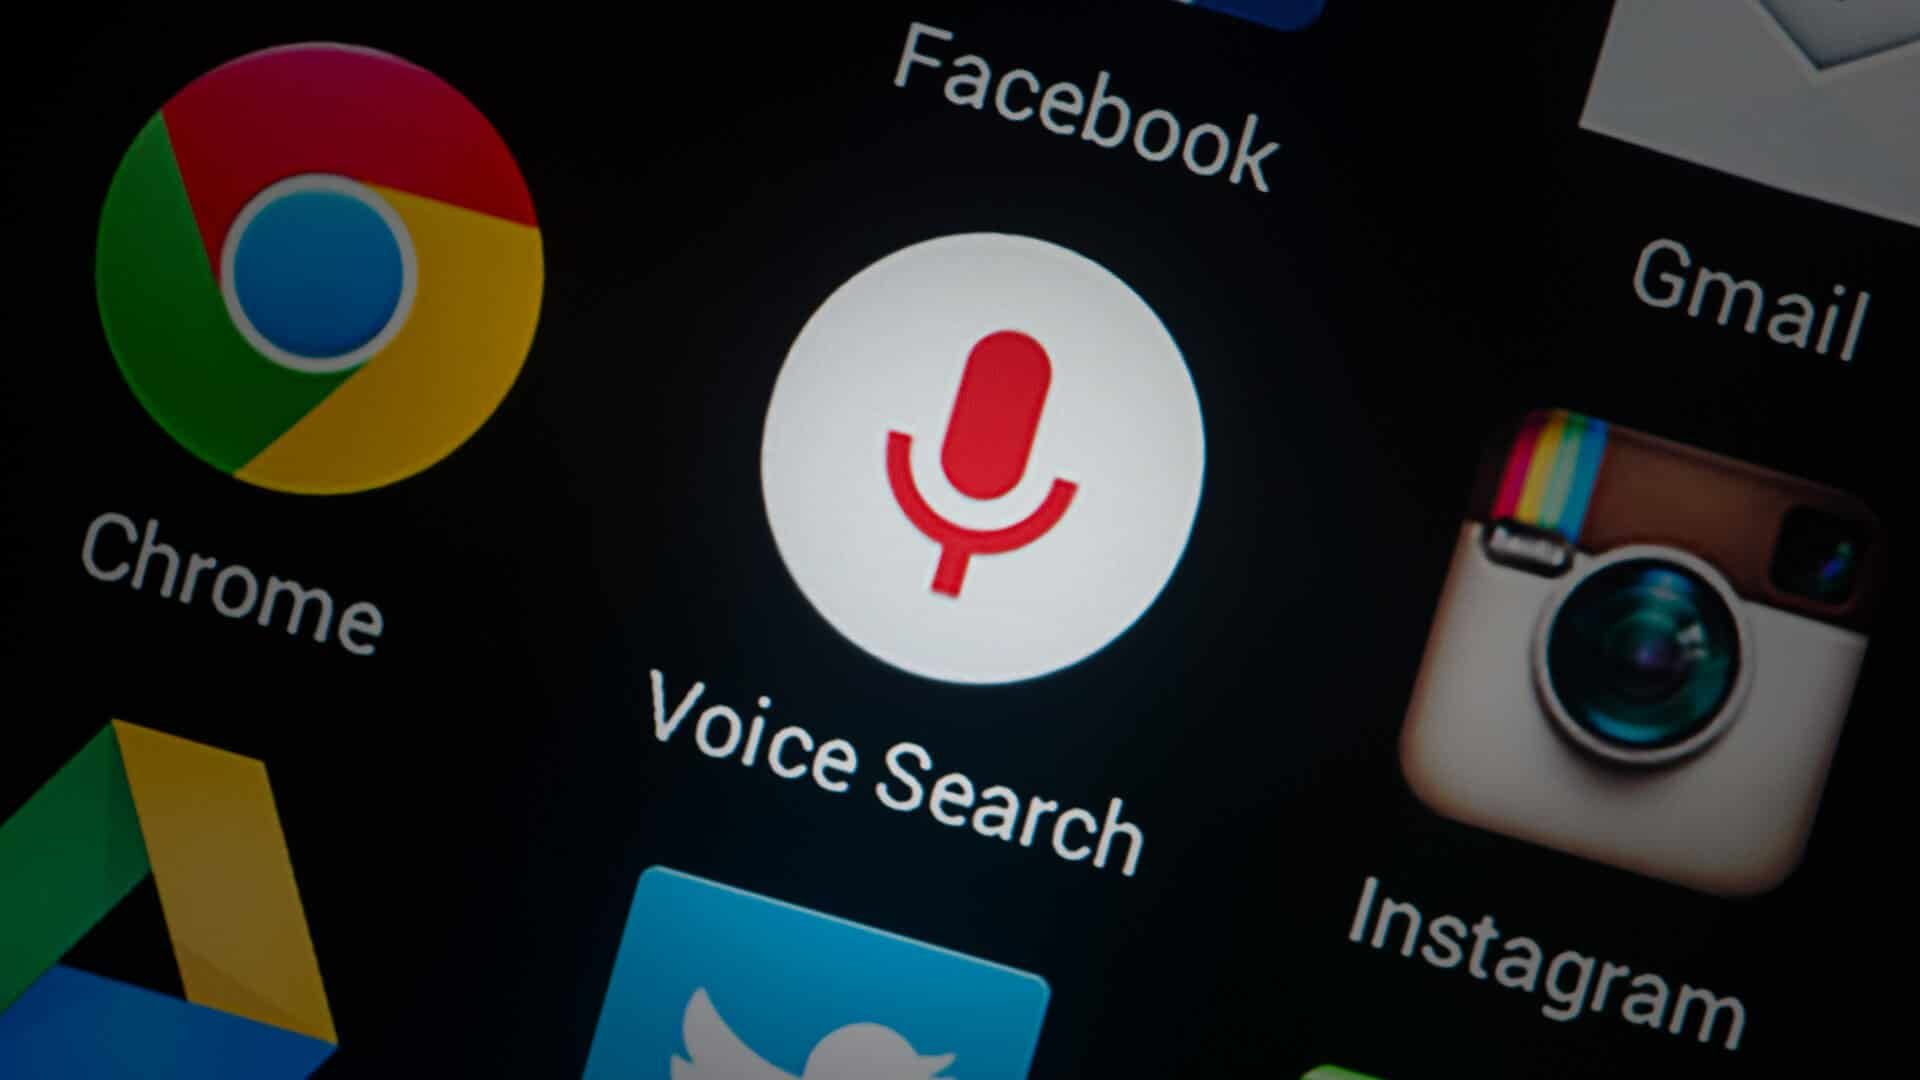 voice search vs. text search